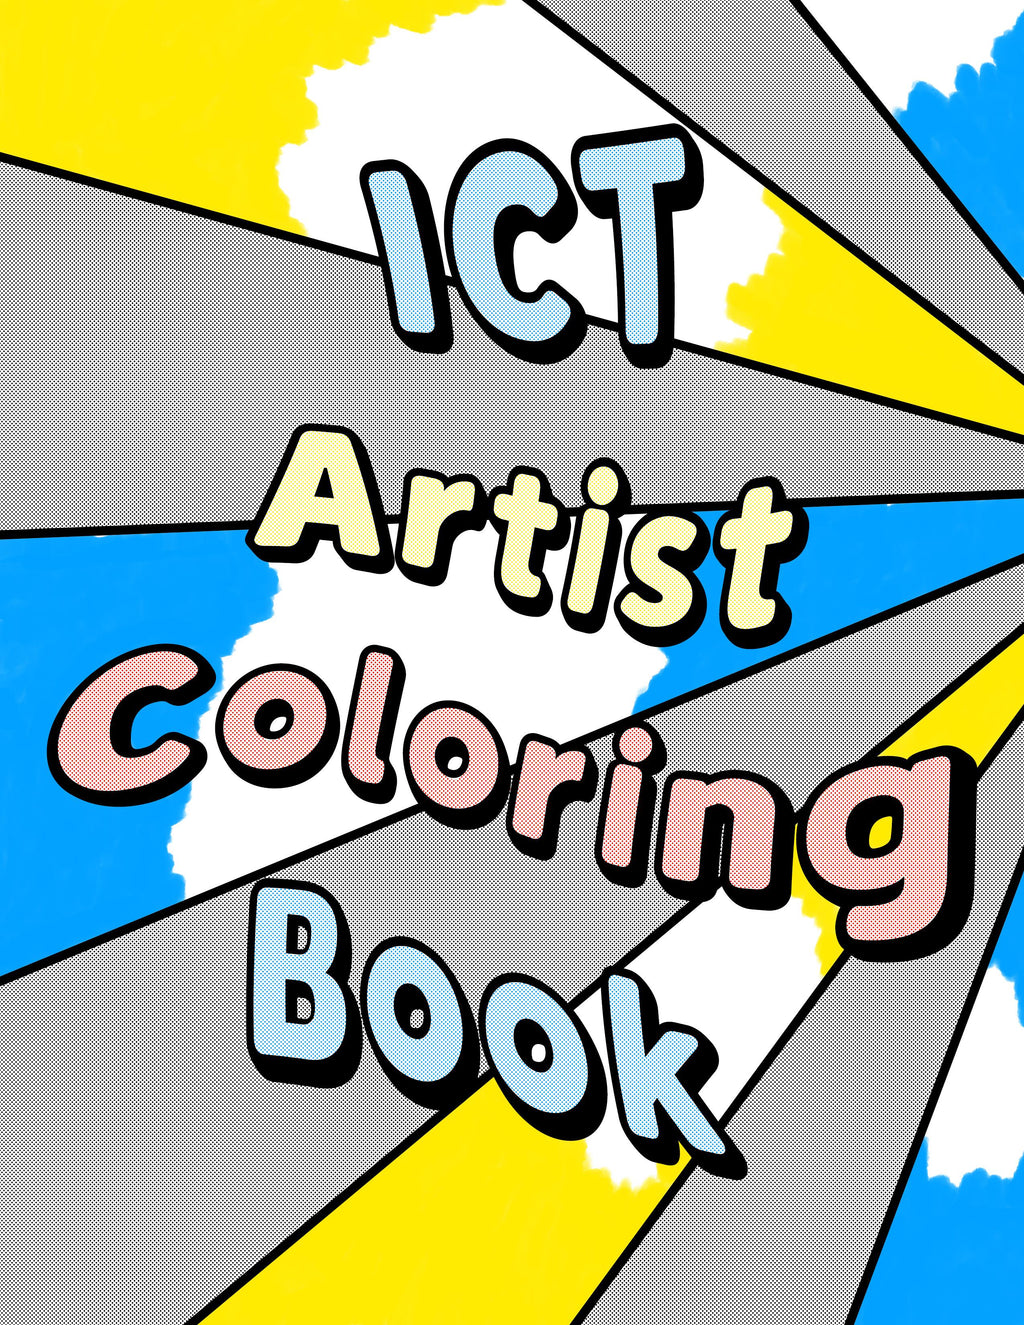 ICT COLORING BOOK